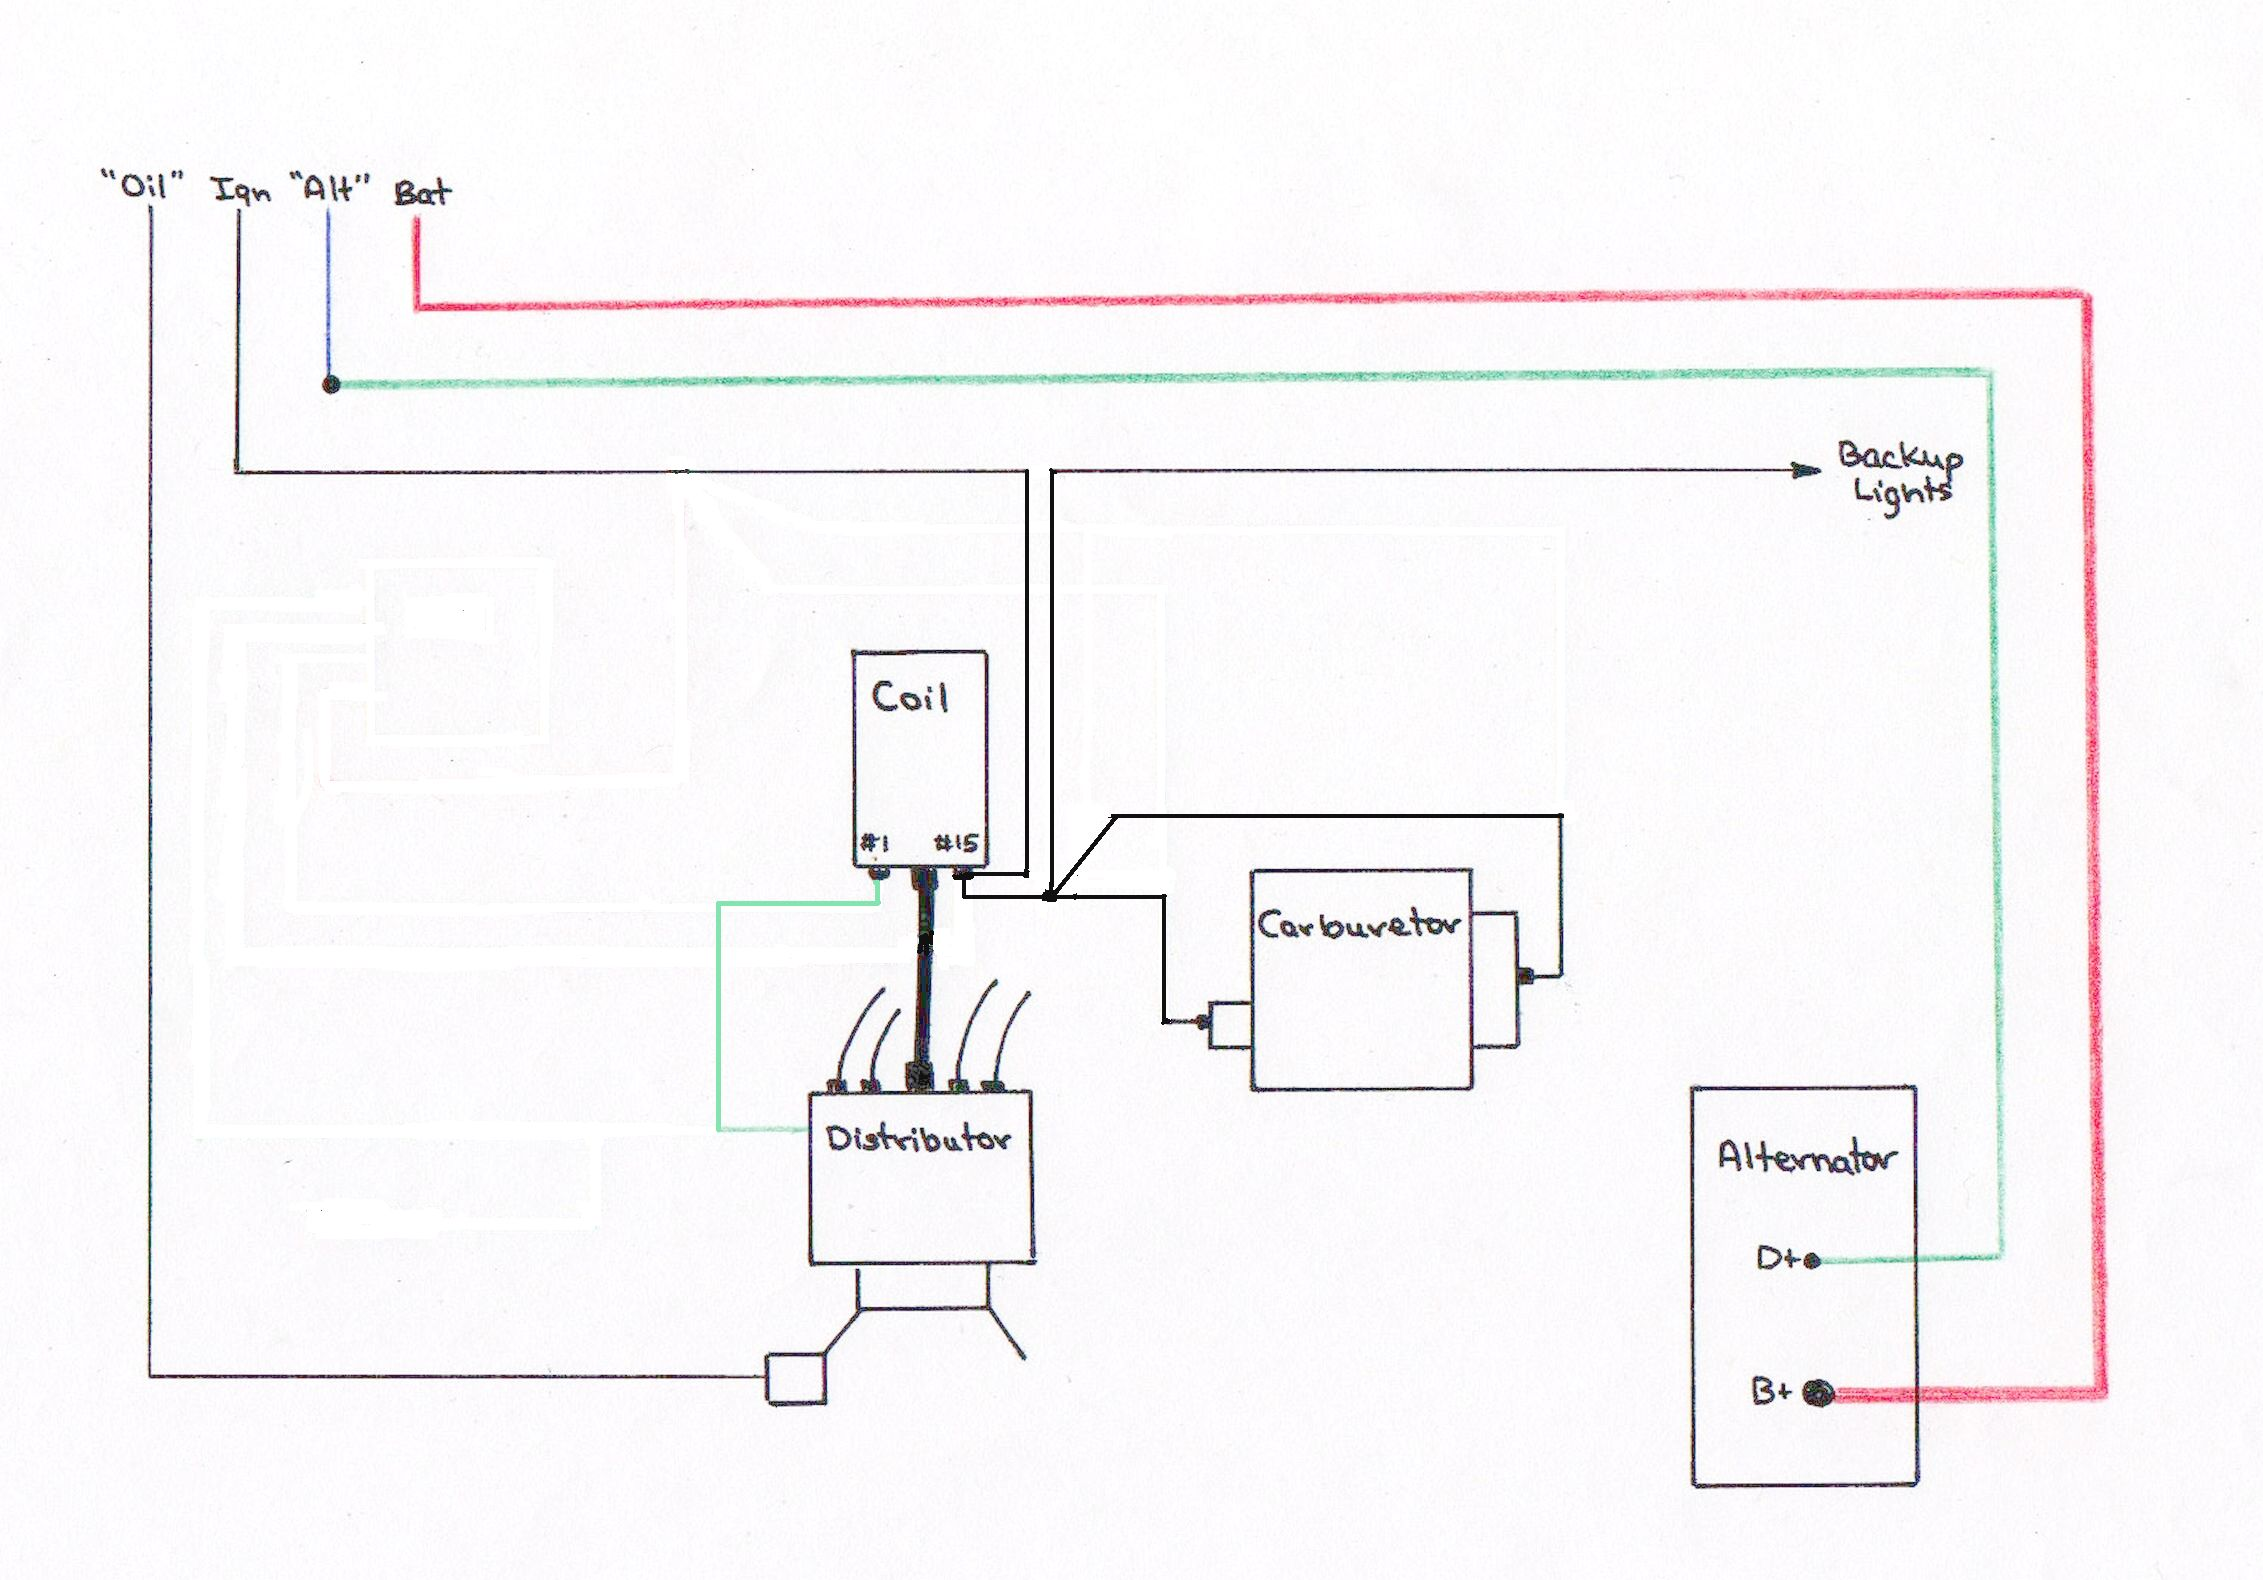 handdrawn_schematic alternator wiring vw engine wiring diagram at webbmarketing.co